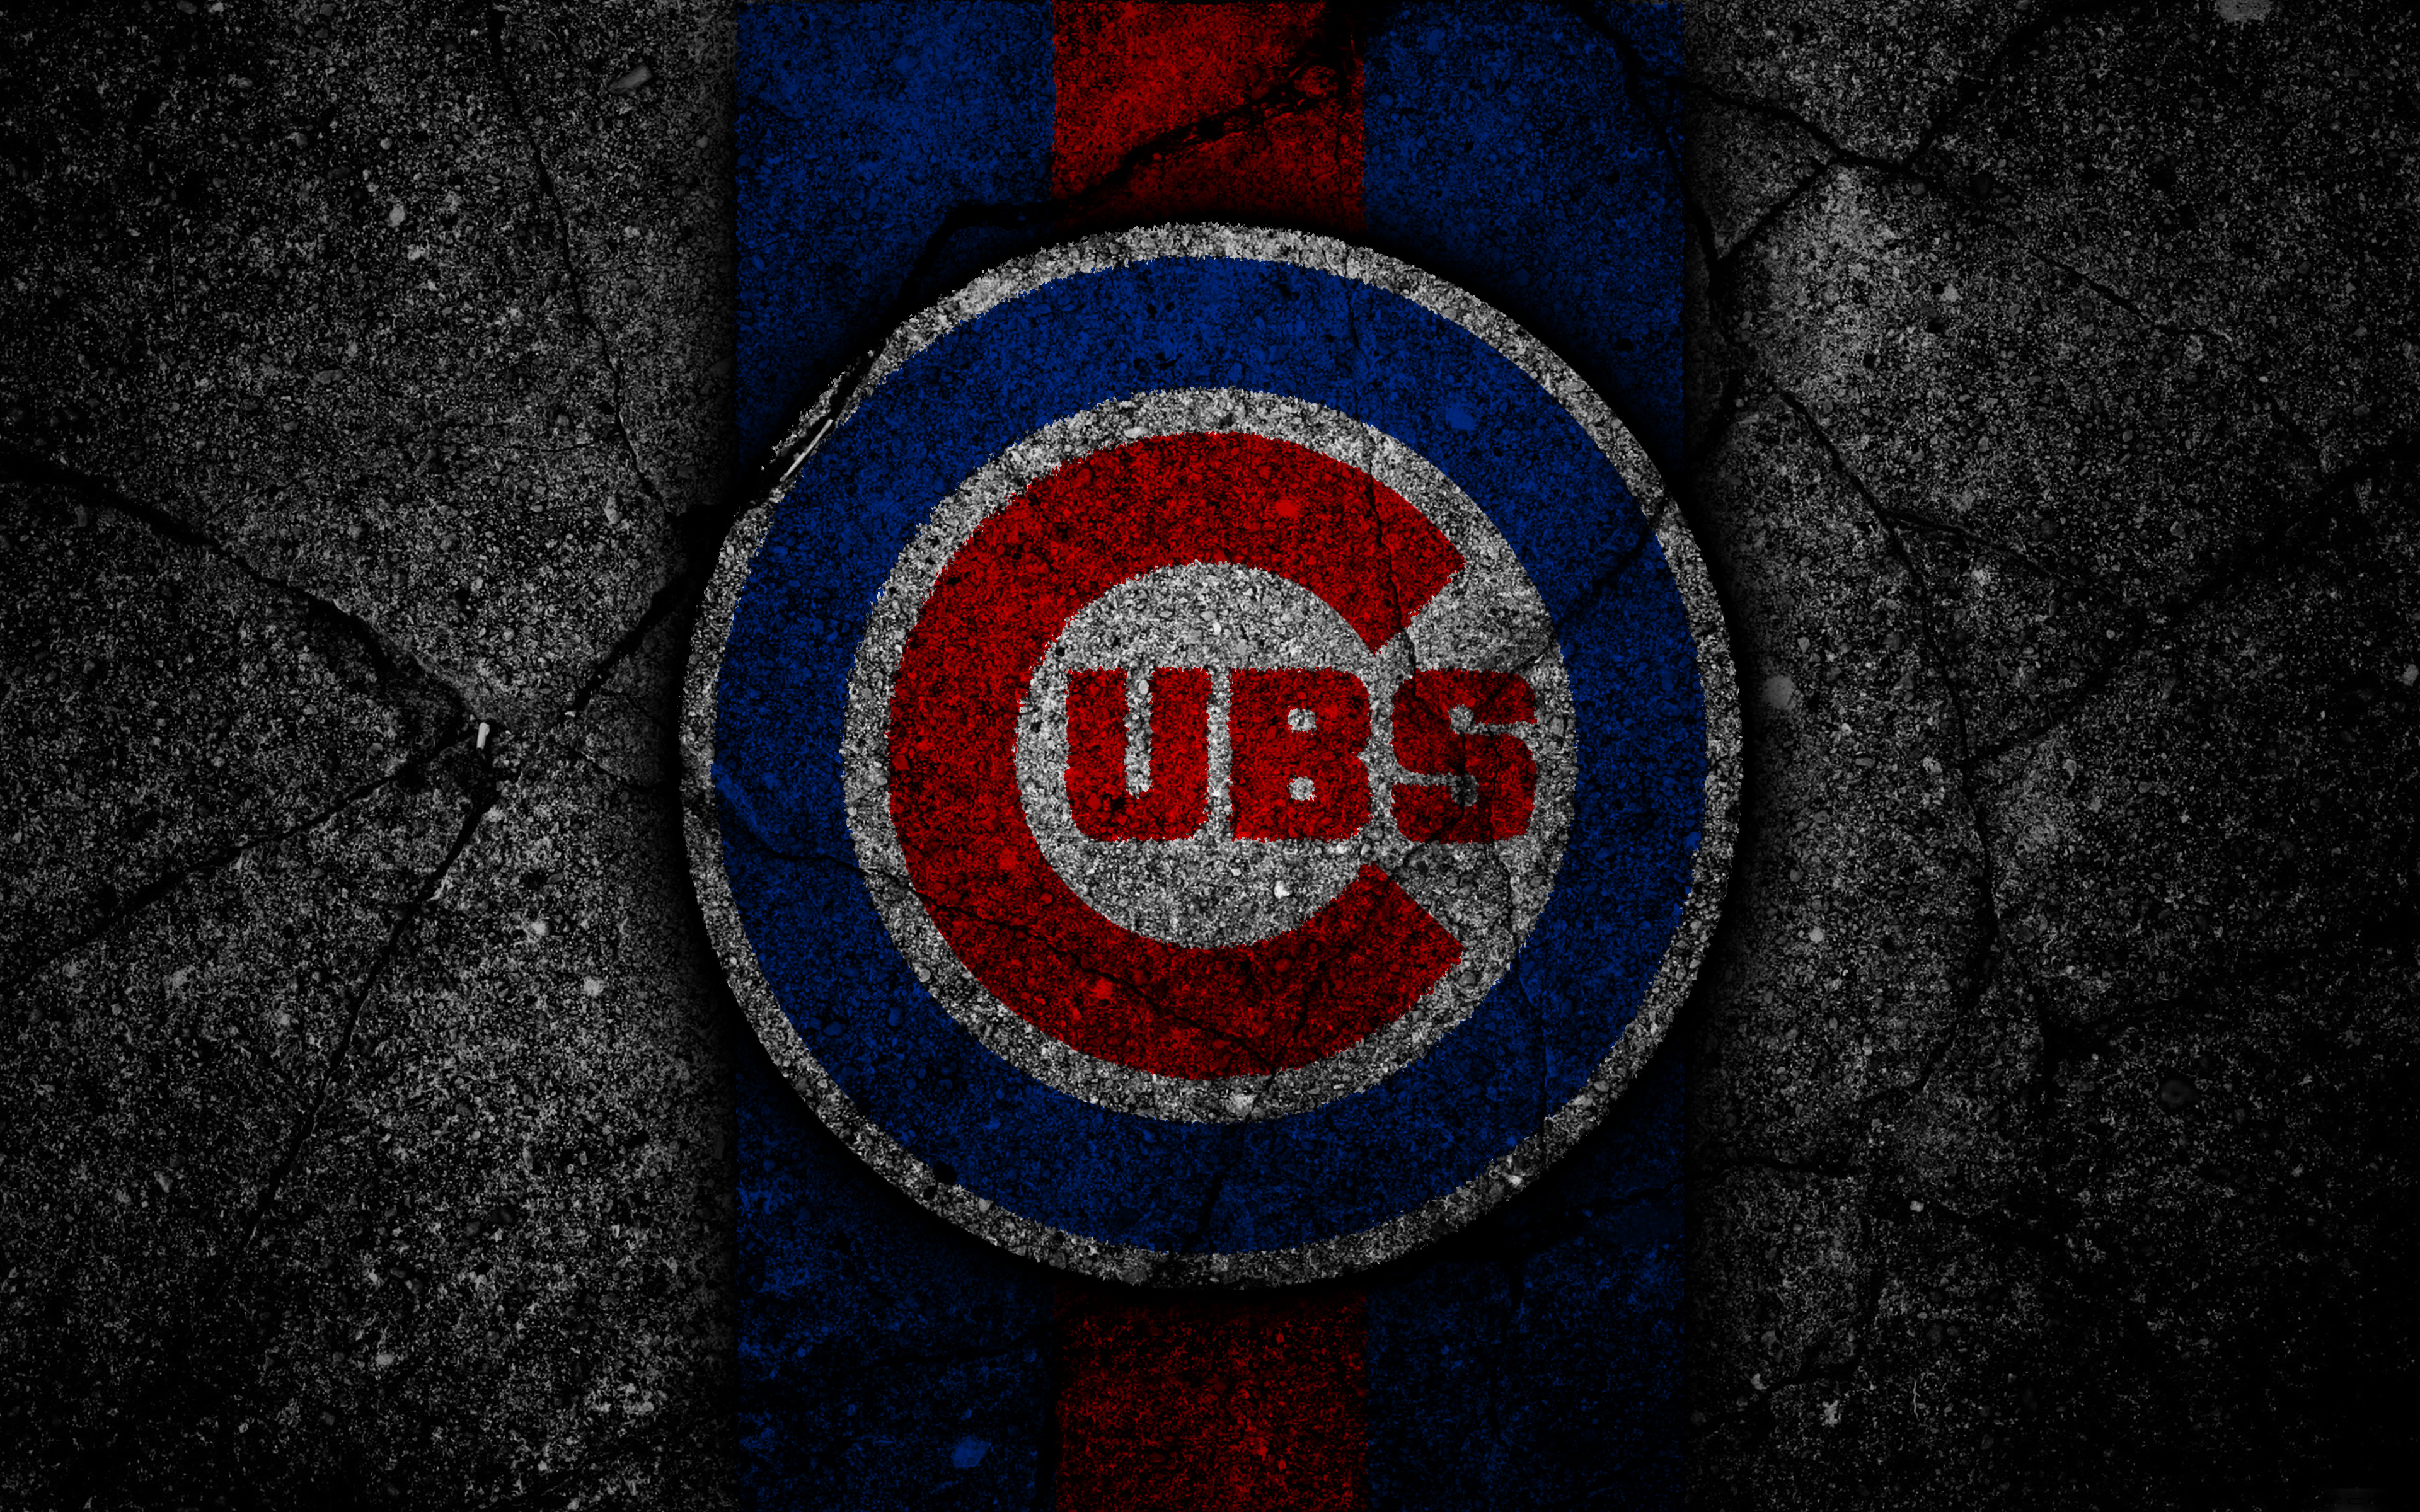 Chicago cubs 4k ultra hd wallpaper background image 3840x2400 id 983011 wallpaper abyss - Cubs background ...